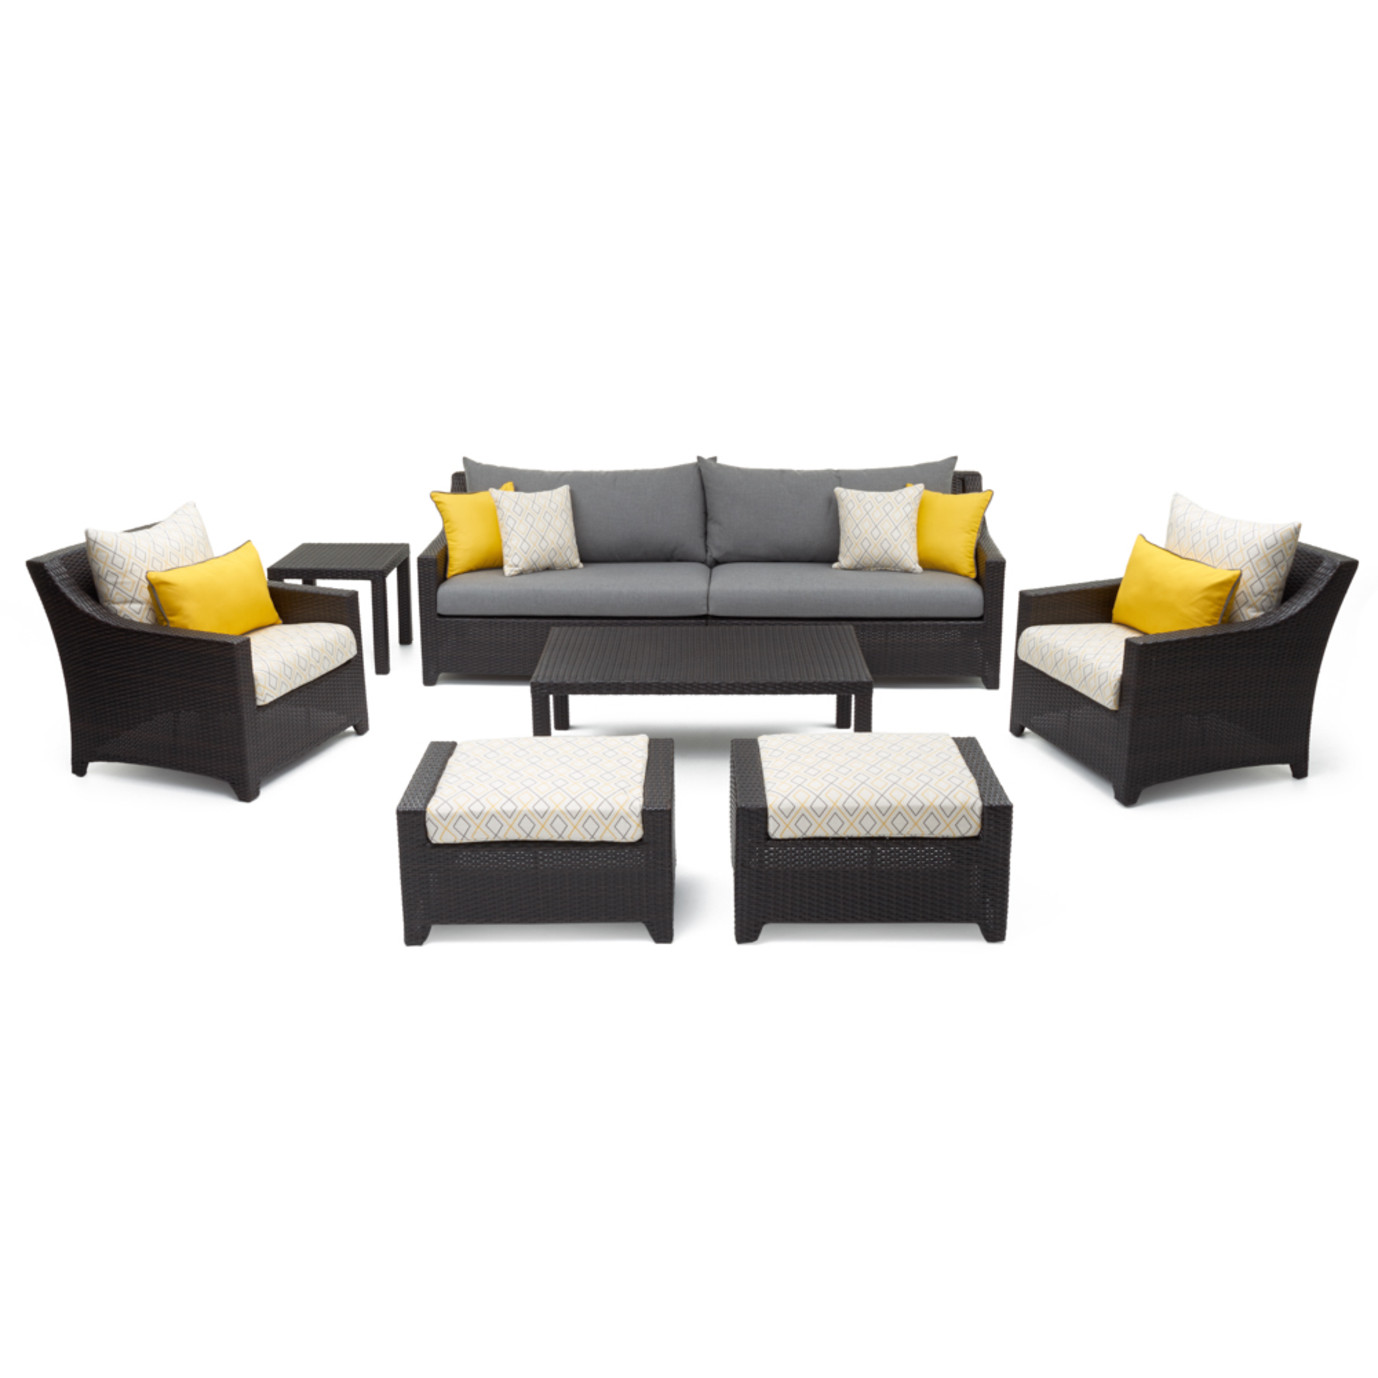 Deco™ 8pc Sofa & Design Club Chair Set - Sunflower Yellow